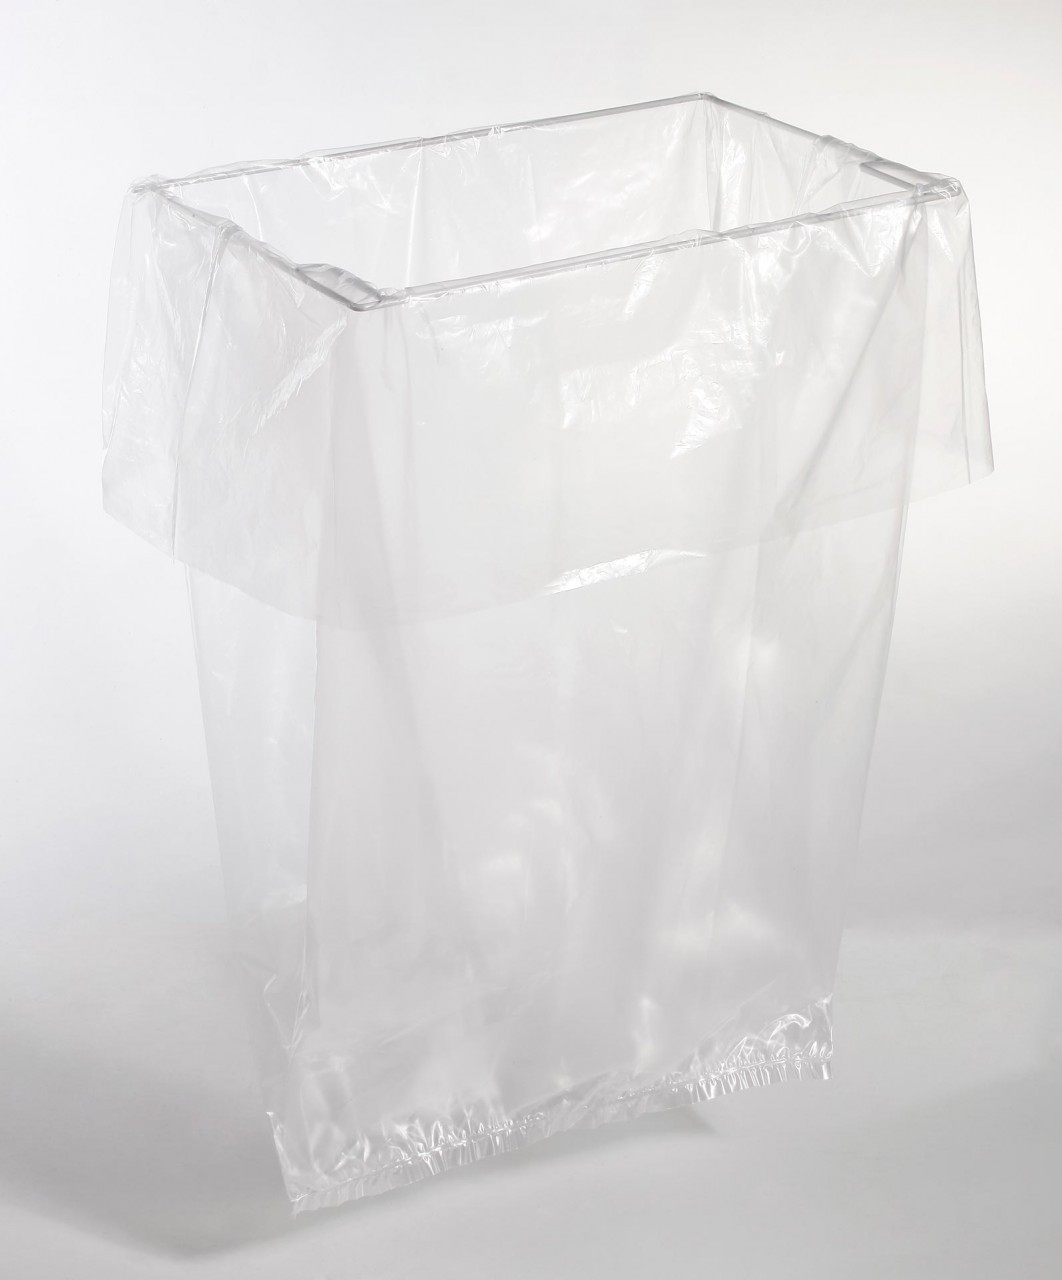 Dahle 20706 30-40 Litre Waste Bags Suits Models 400/401/402/412 (Pack of 10)